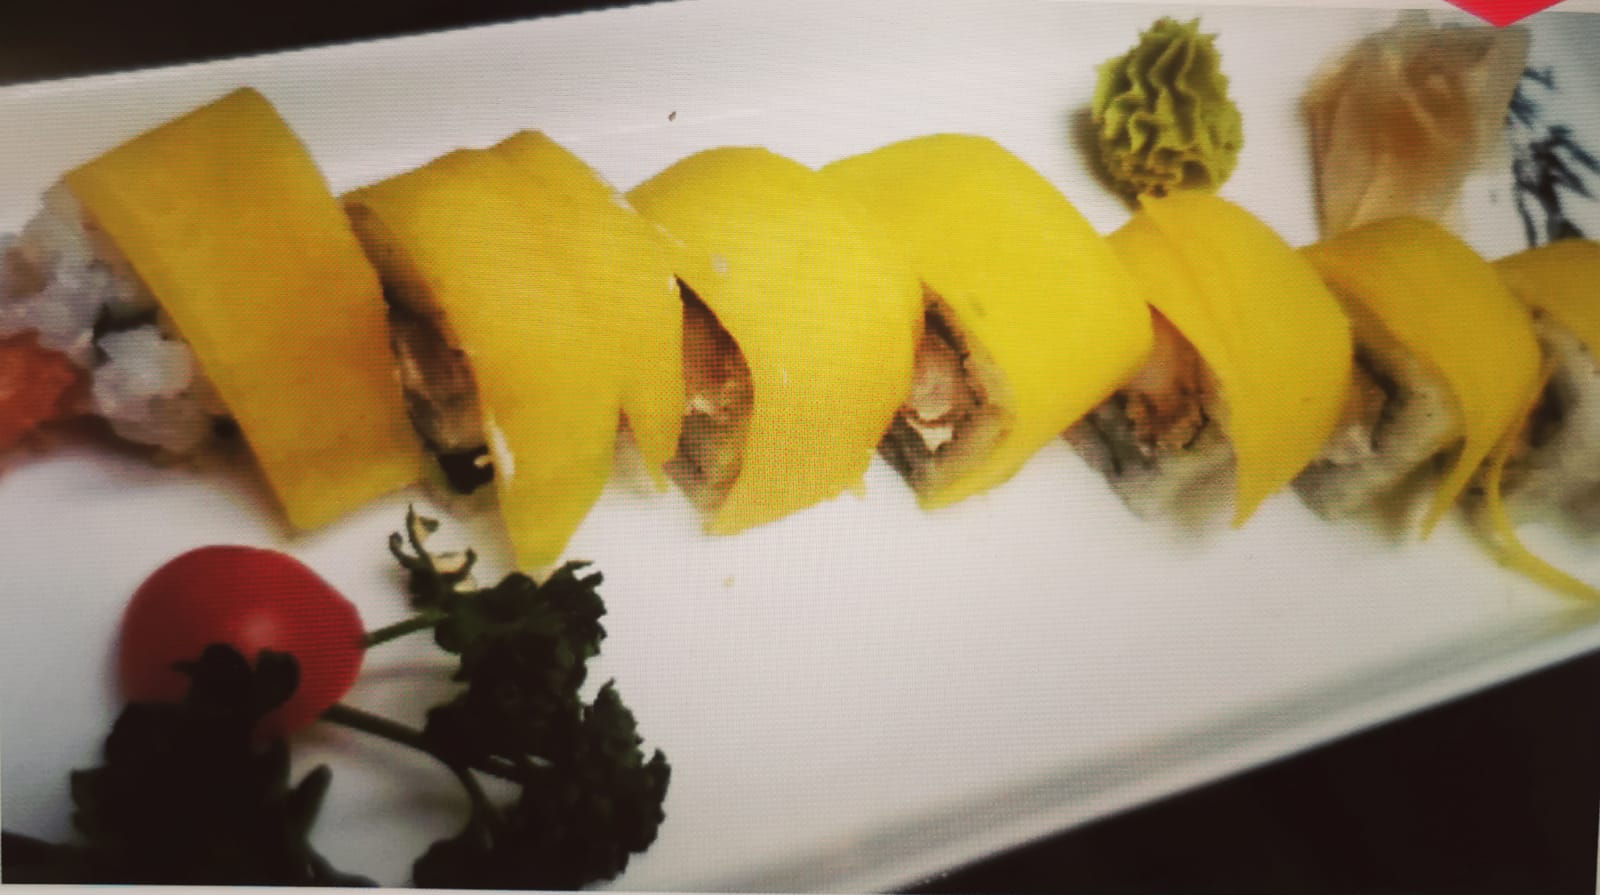 73. Exotic Roll